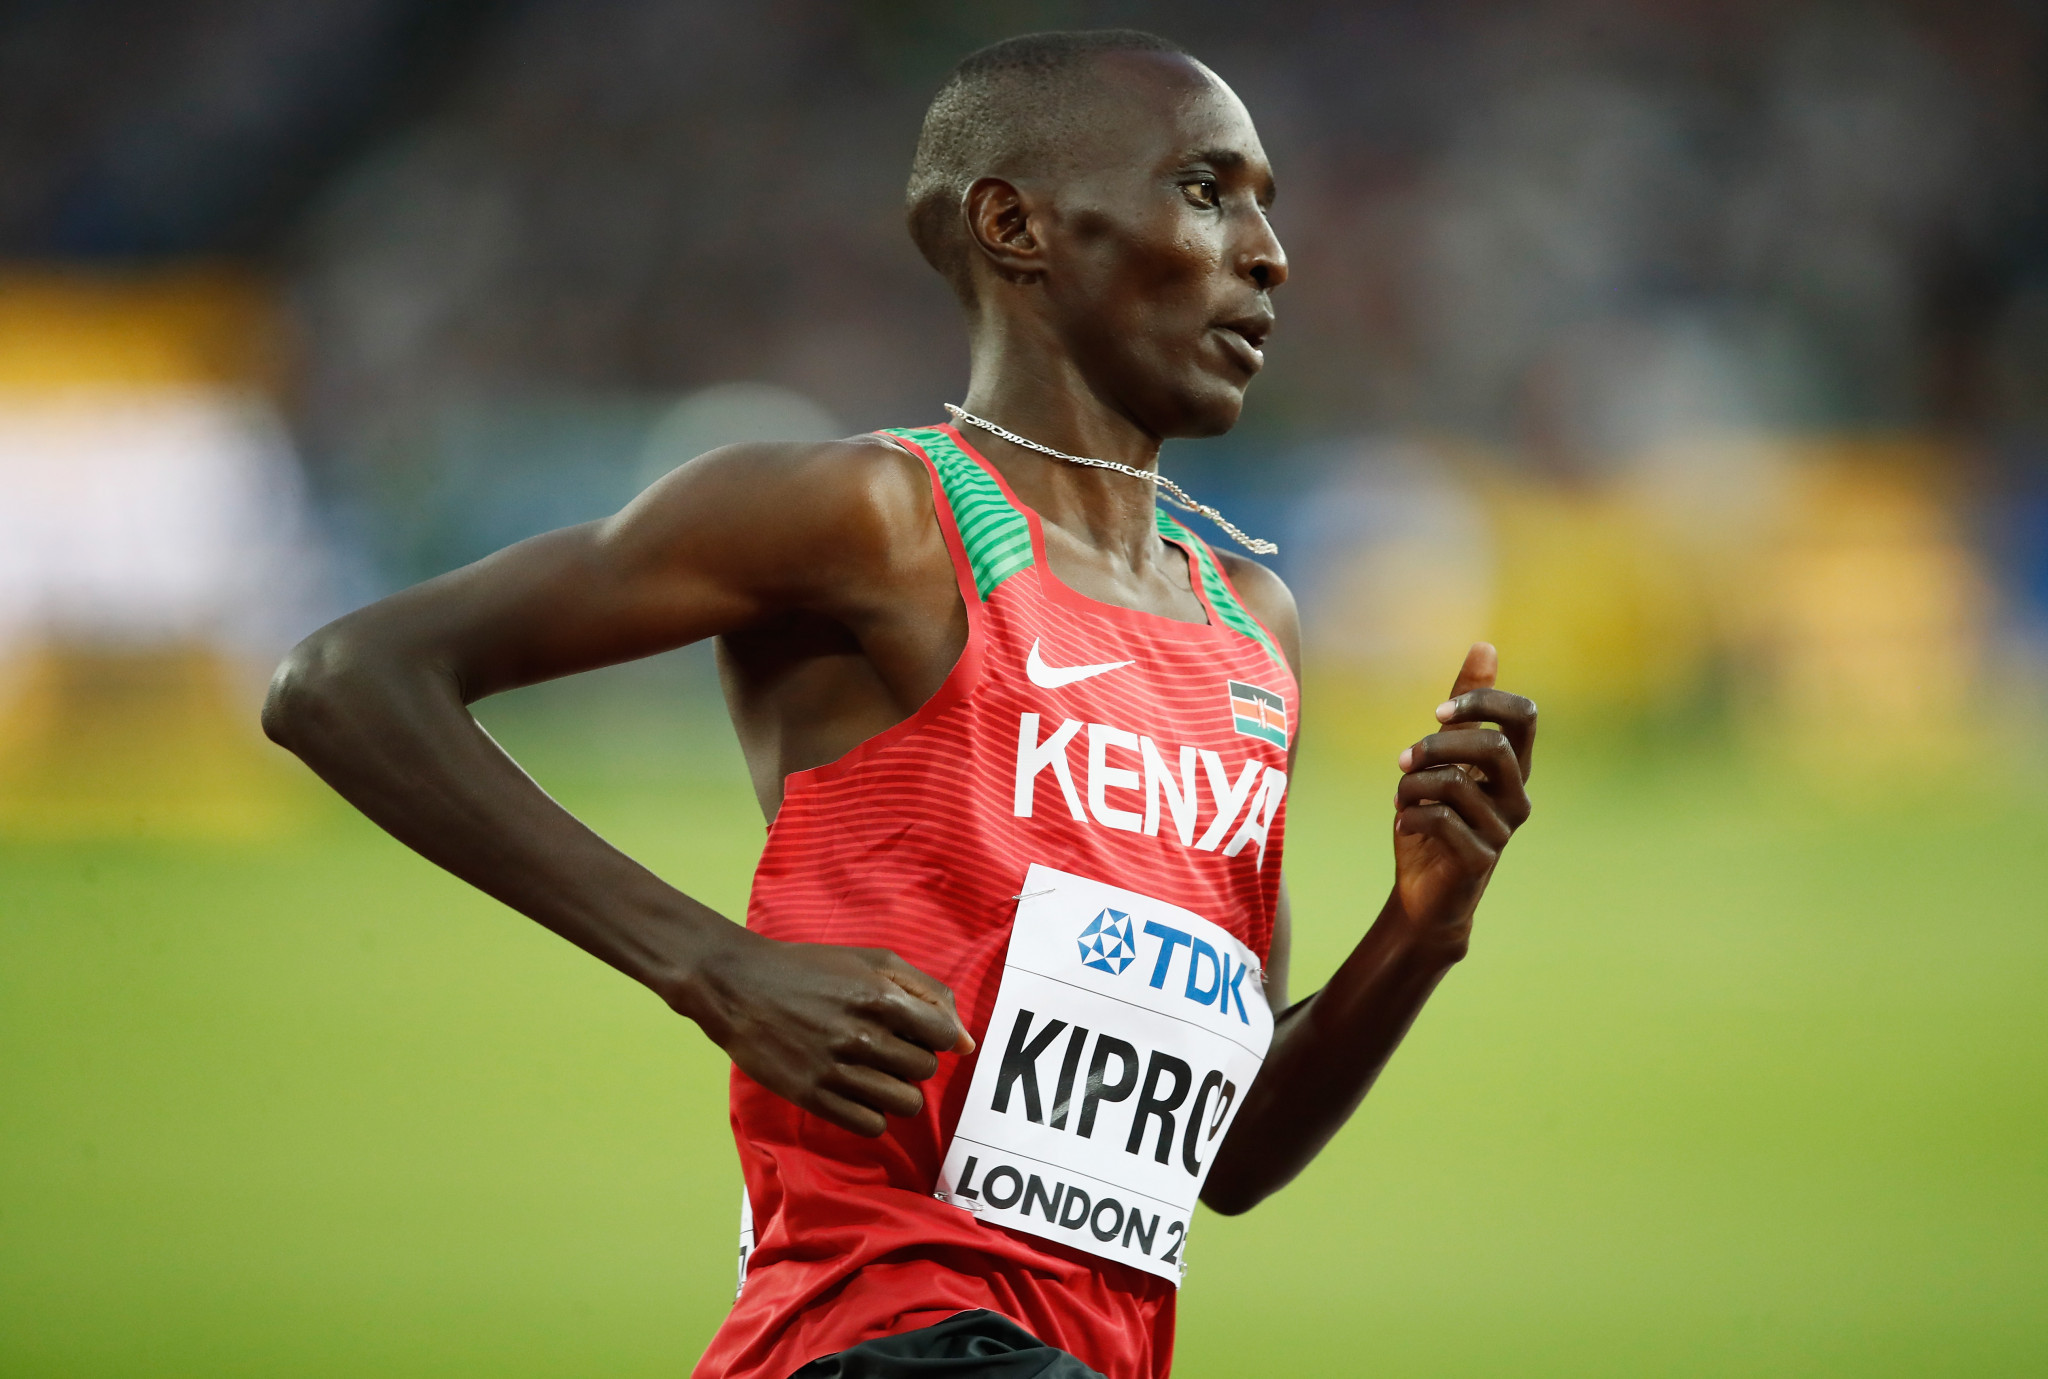 Kenyan Olympic 1500m champion Kiprop tests positive for EPO, reports claim